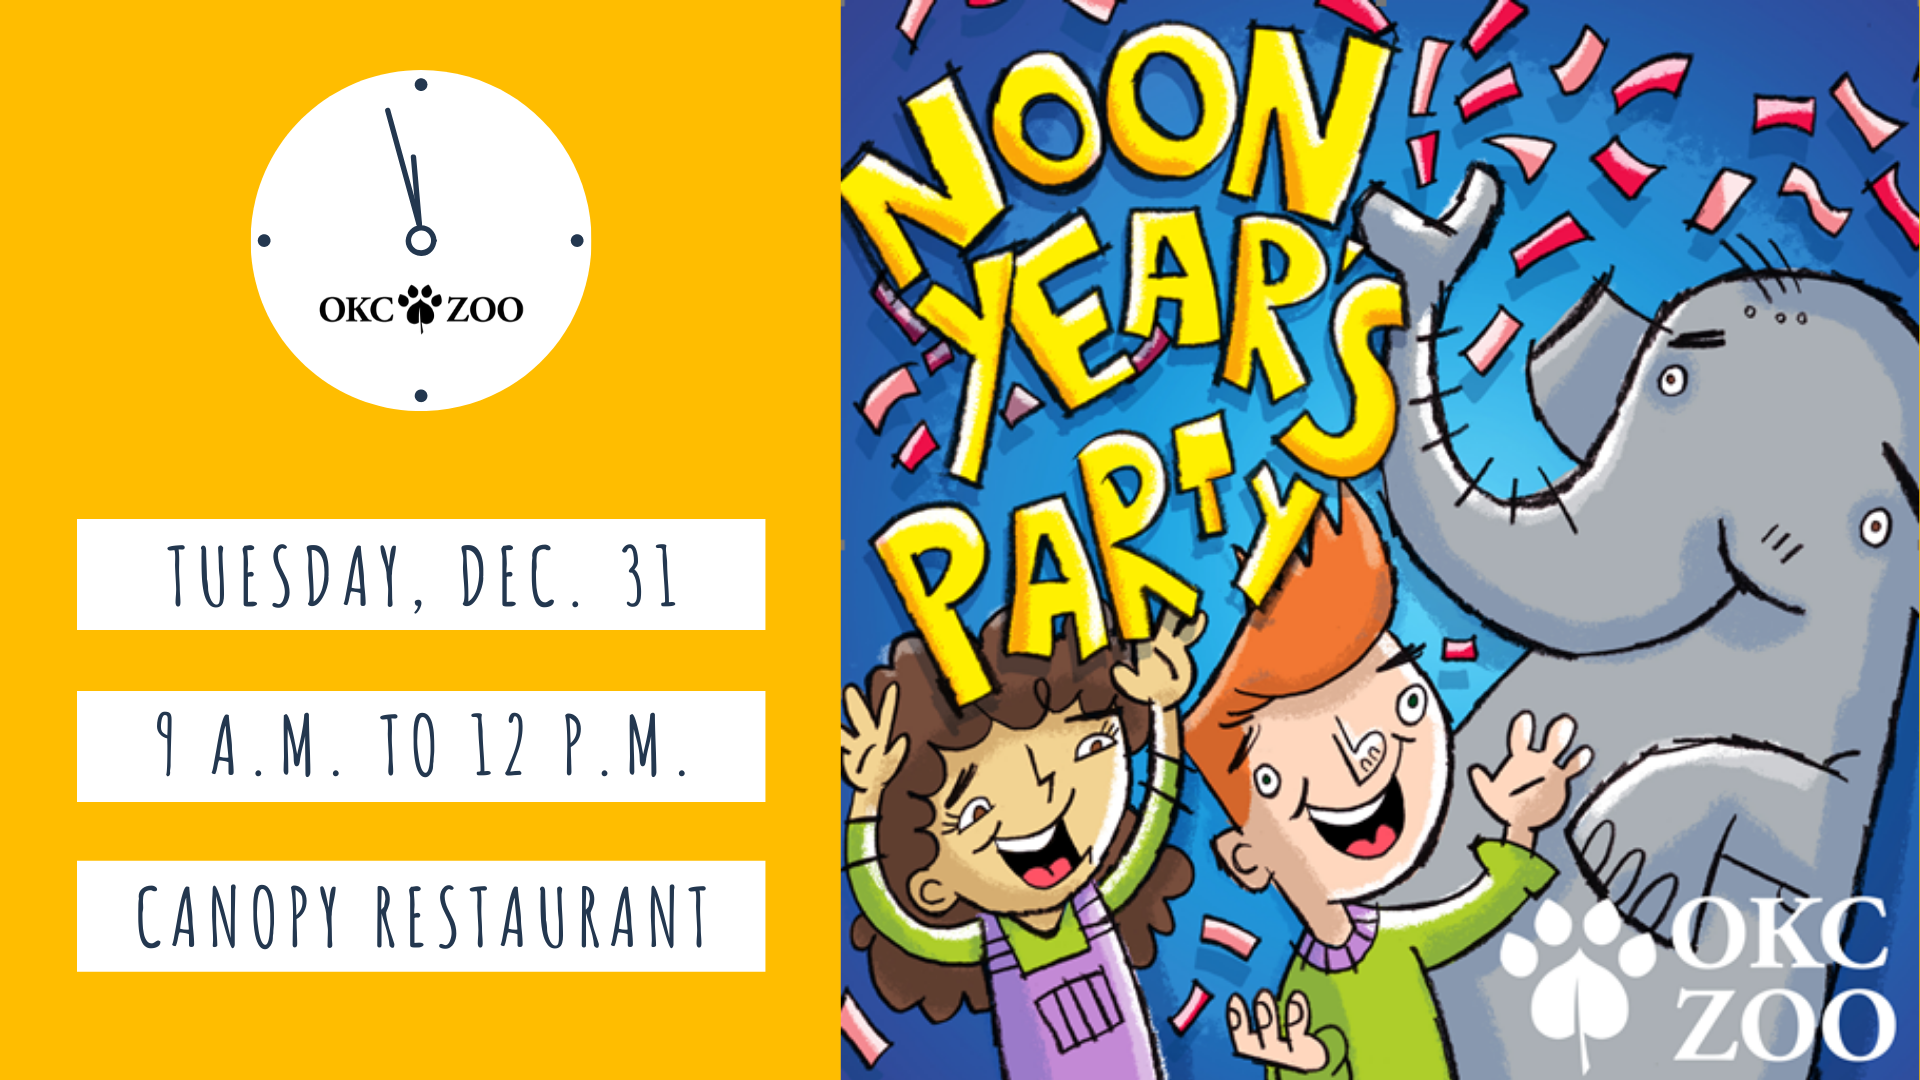 Noon Year's Party